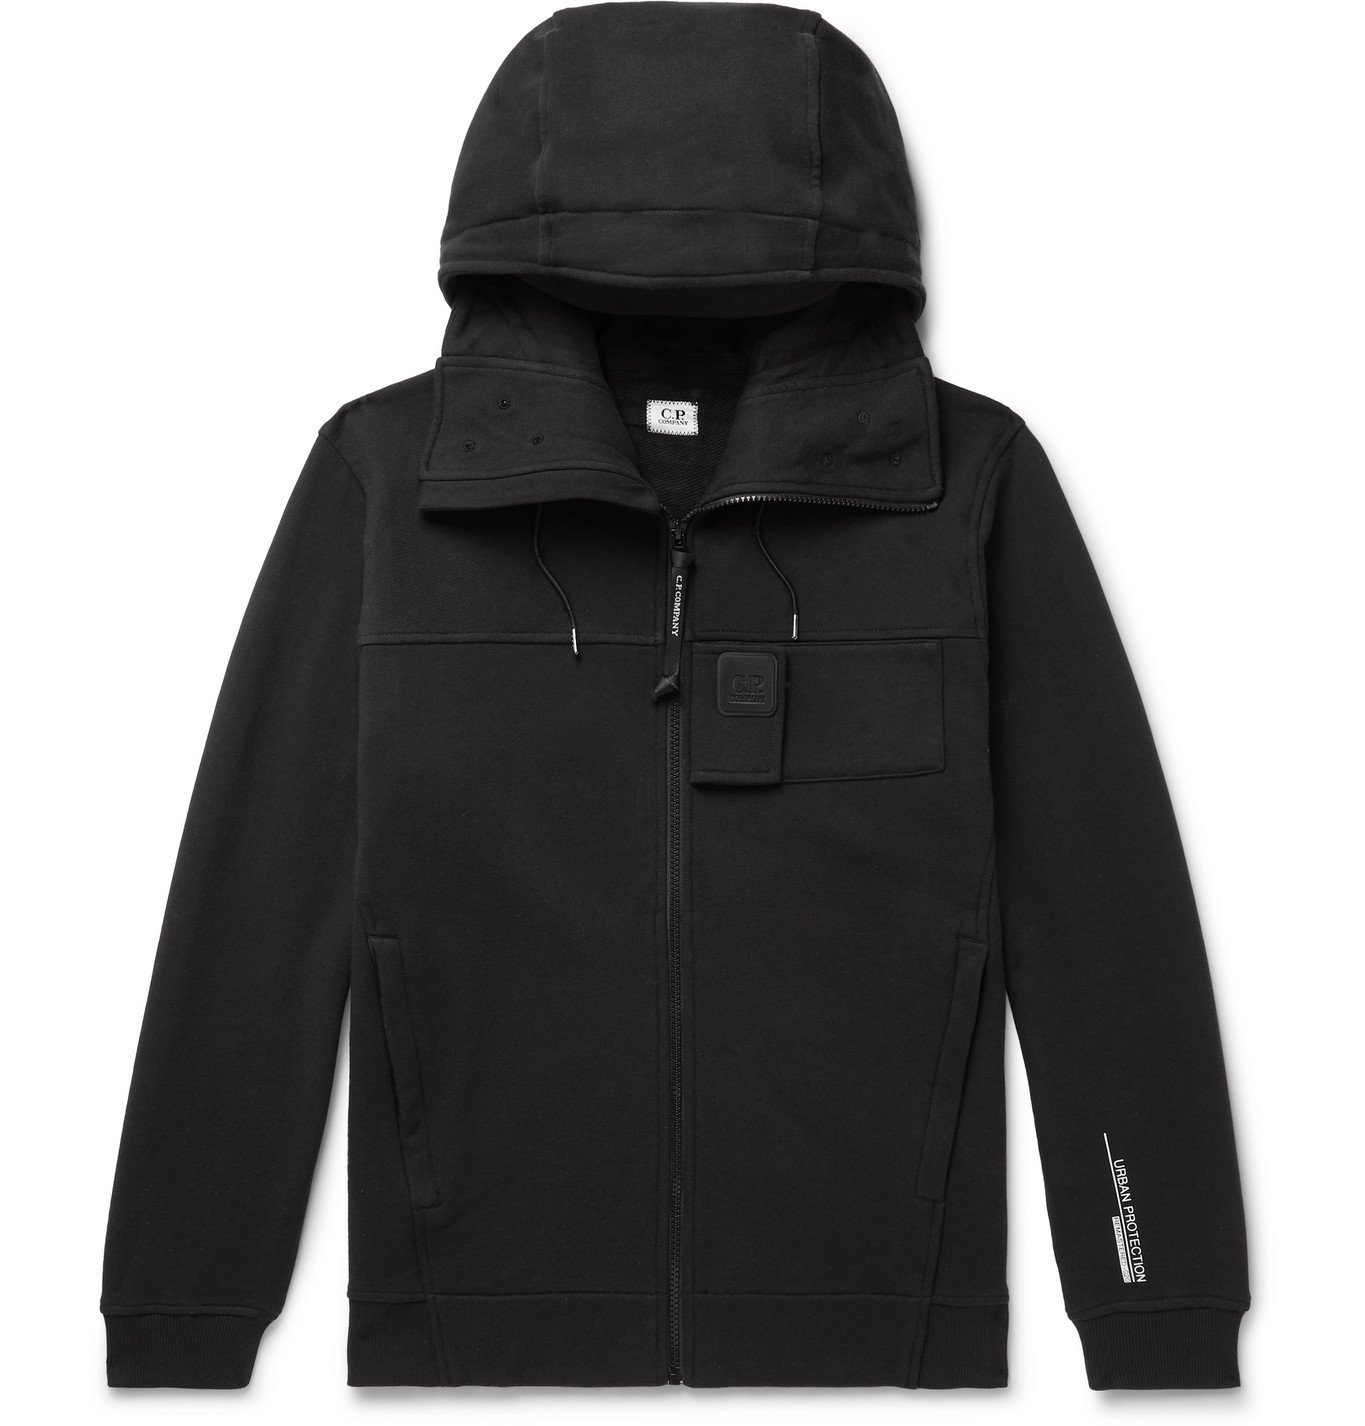 C.P. Company - Loopback Cotton-Jersey Zip-Up Hoodie - Black